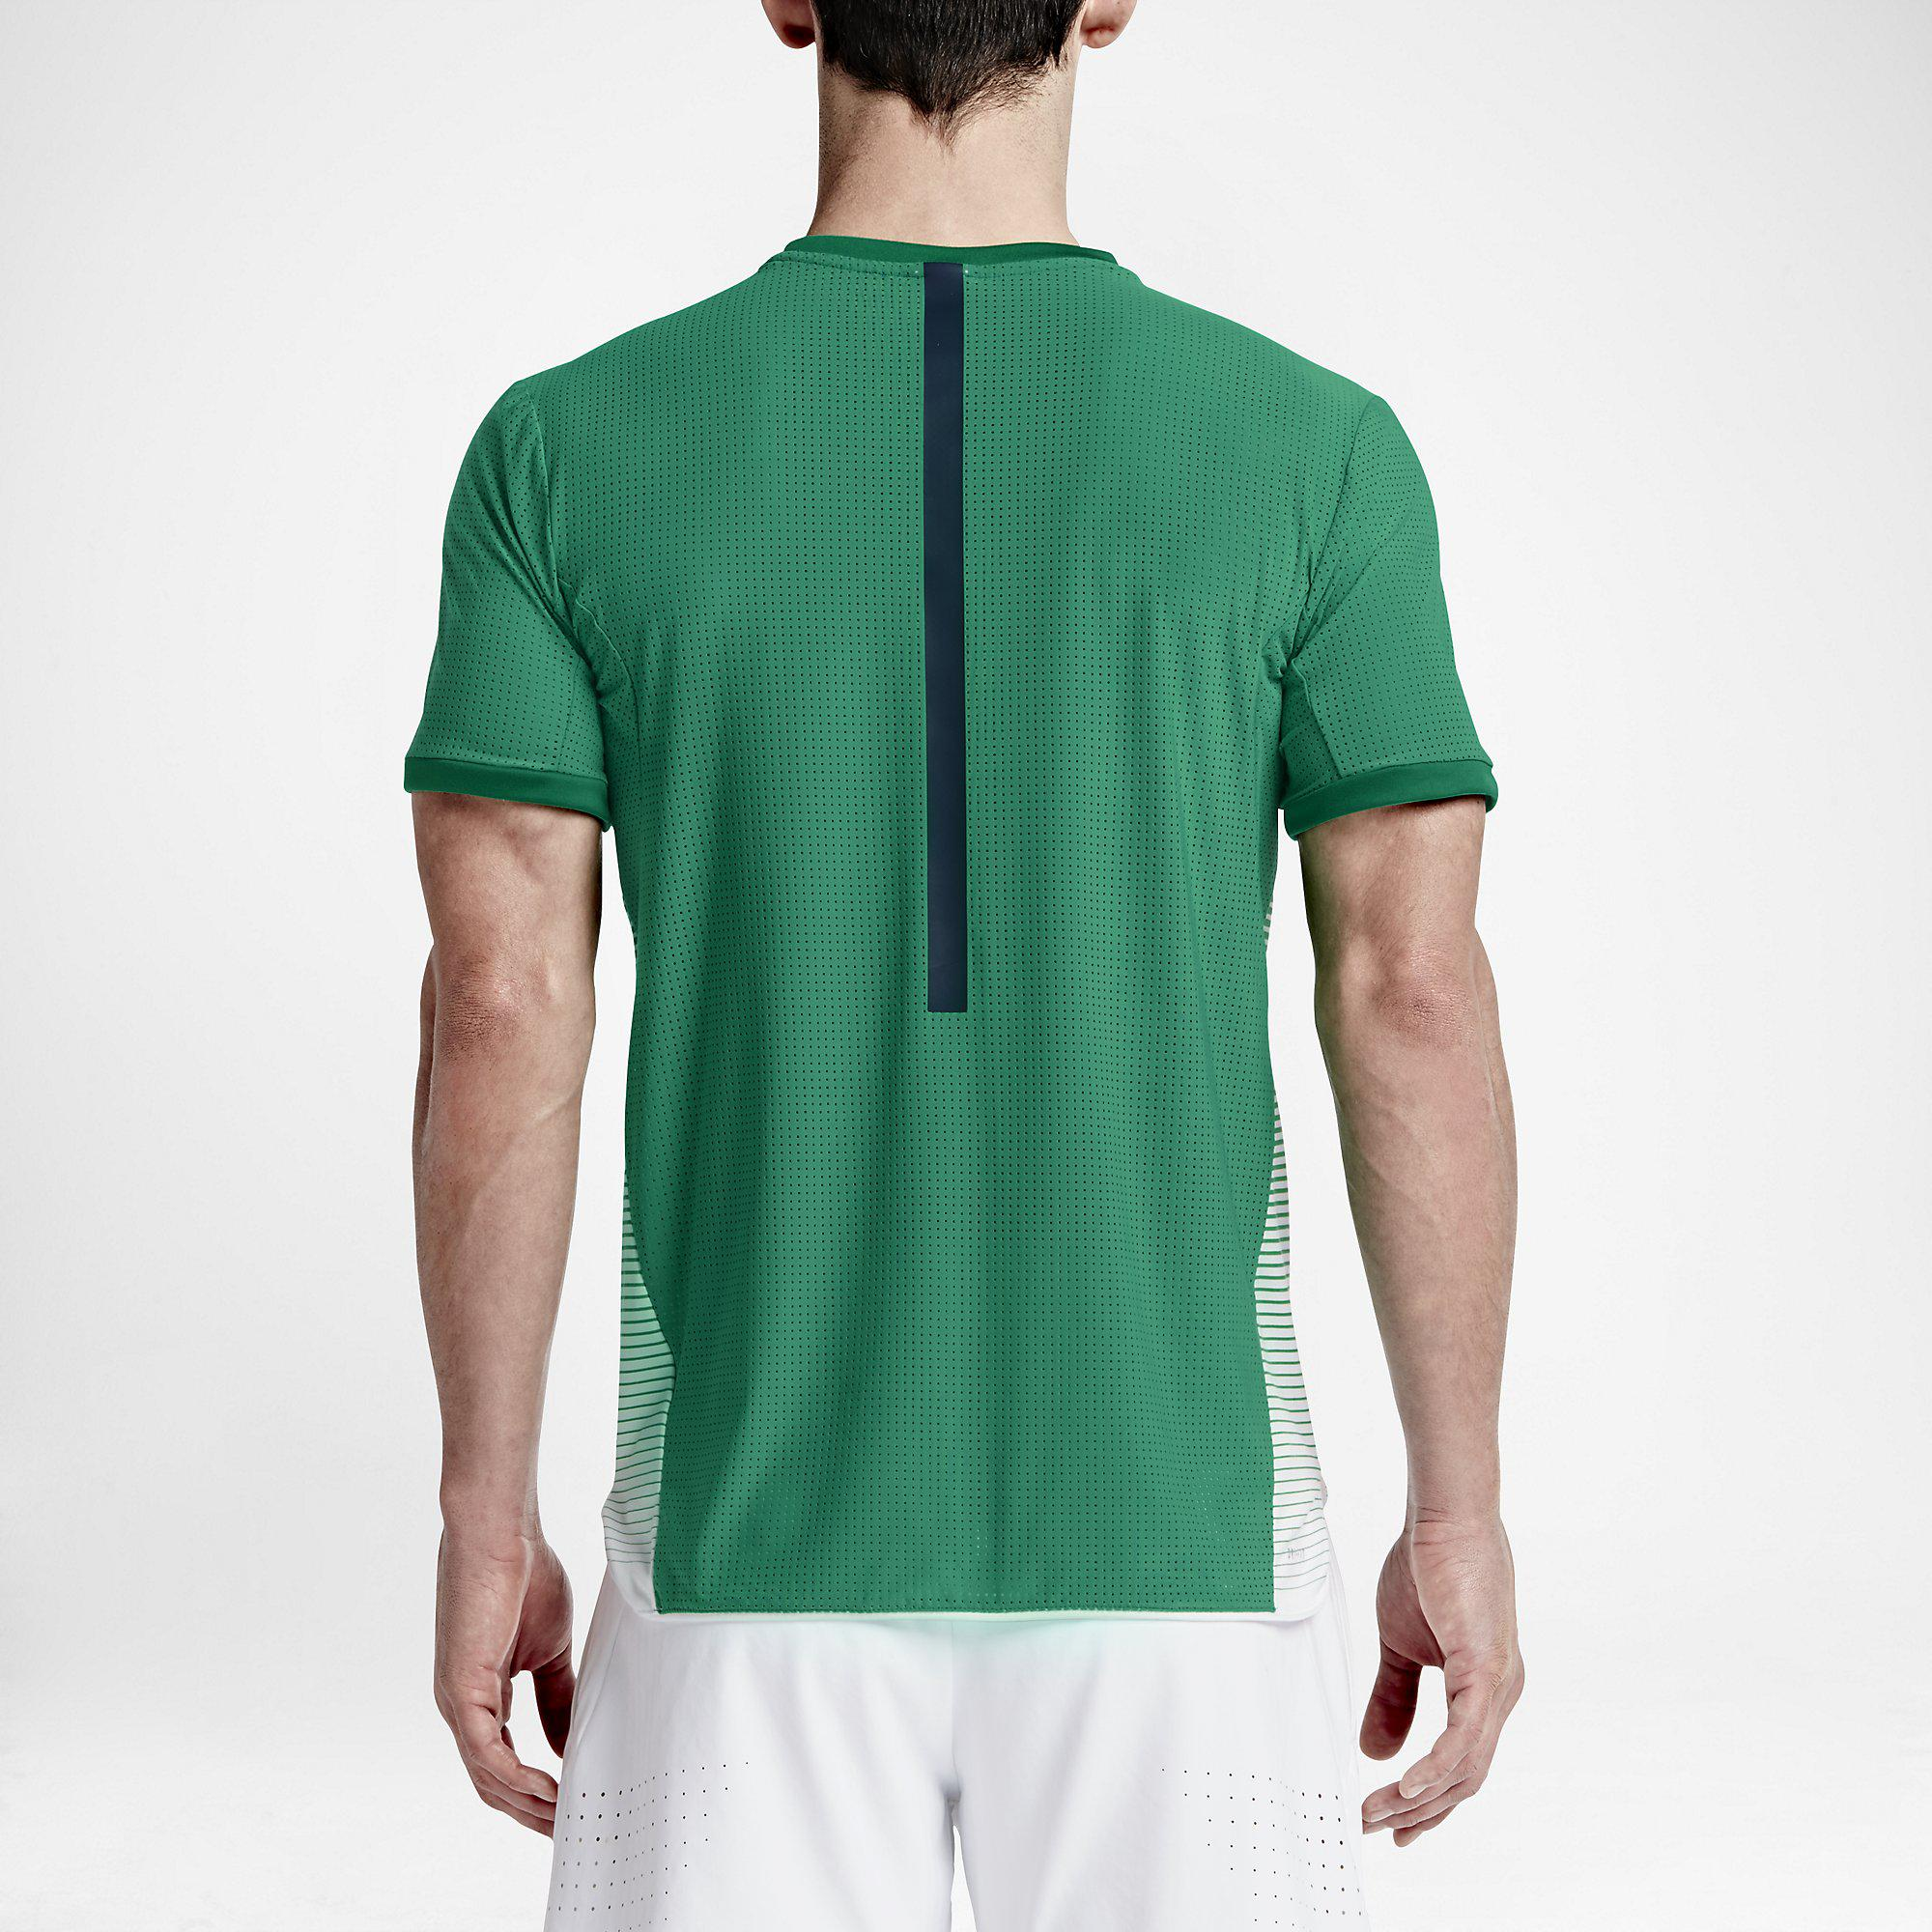 Out Of Stock. Nike Mens Challenger Premier Crew - Lucid Green/White ...